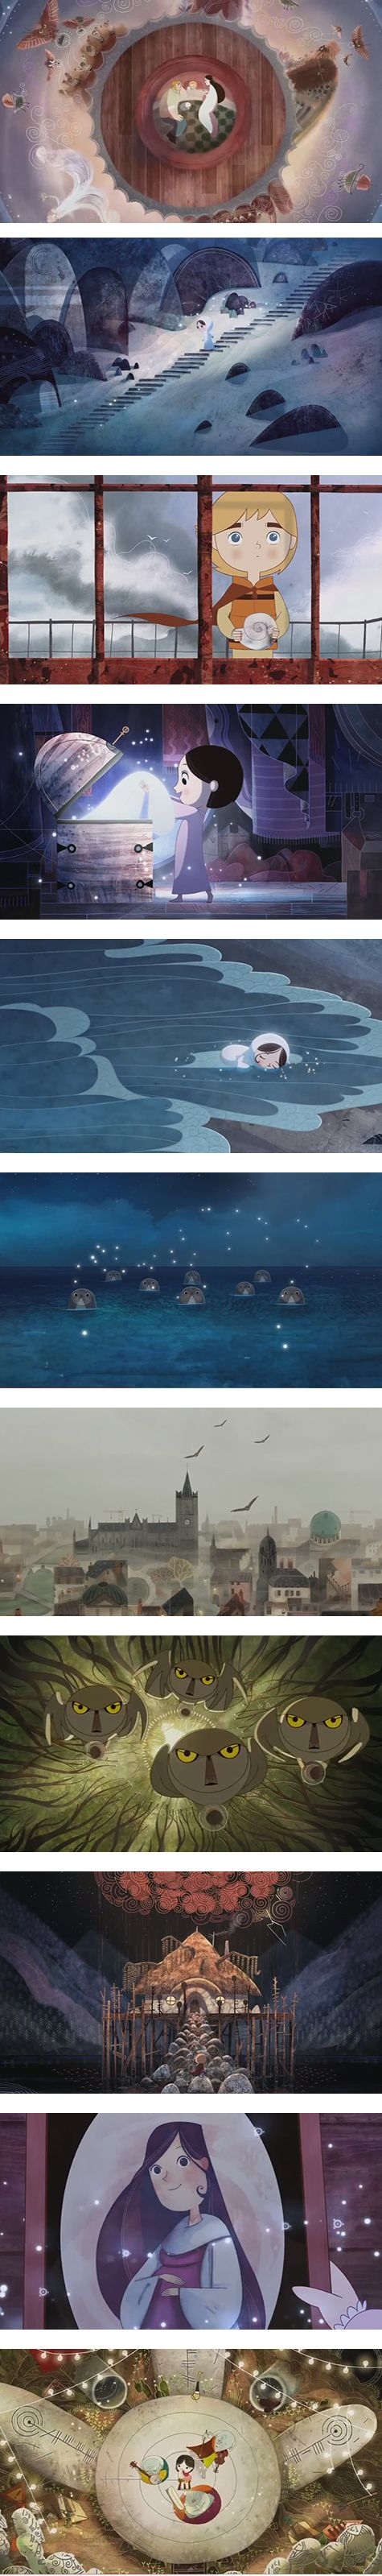 Song of the Sea - Haven't seen this, but I'd like to. By the same artist(s) who made 'The Book of Kells' film, which was very good.